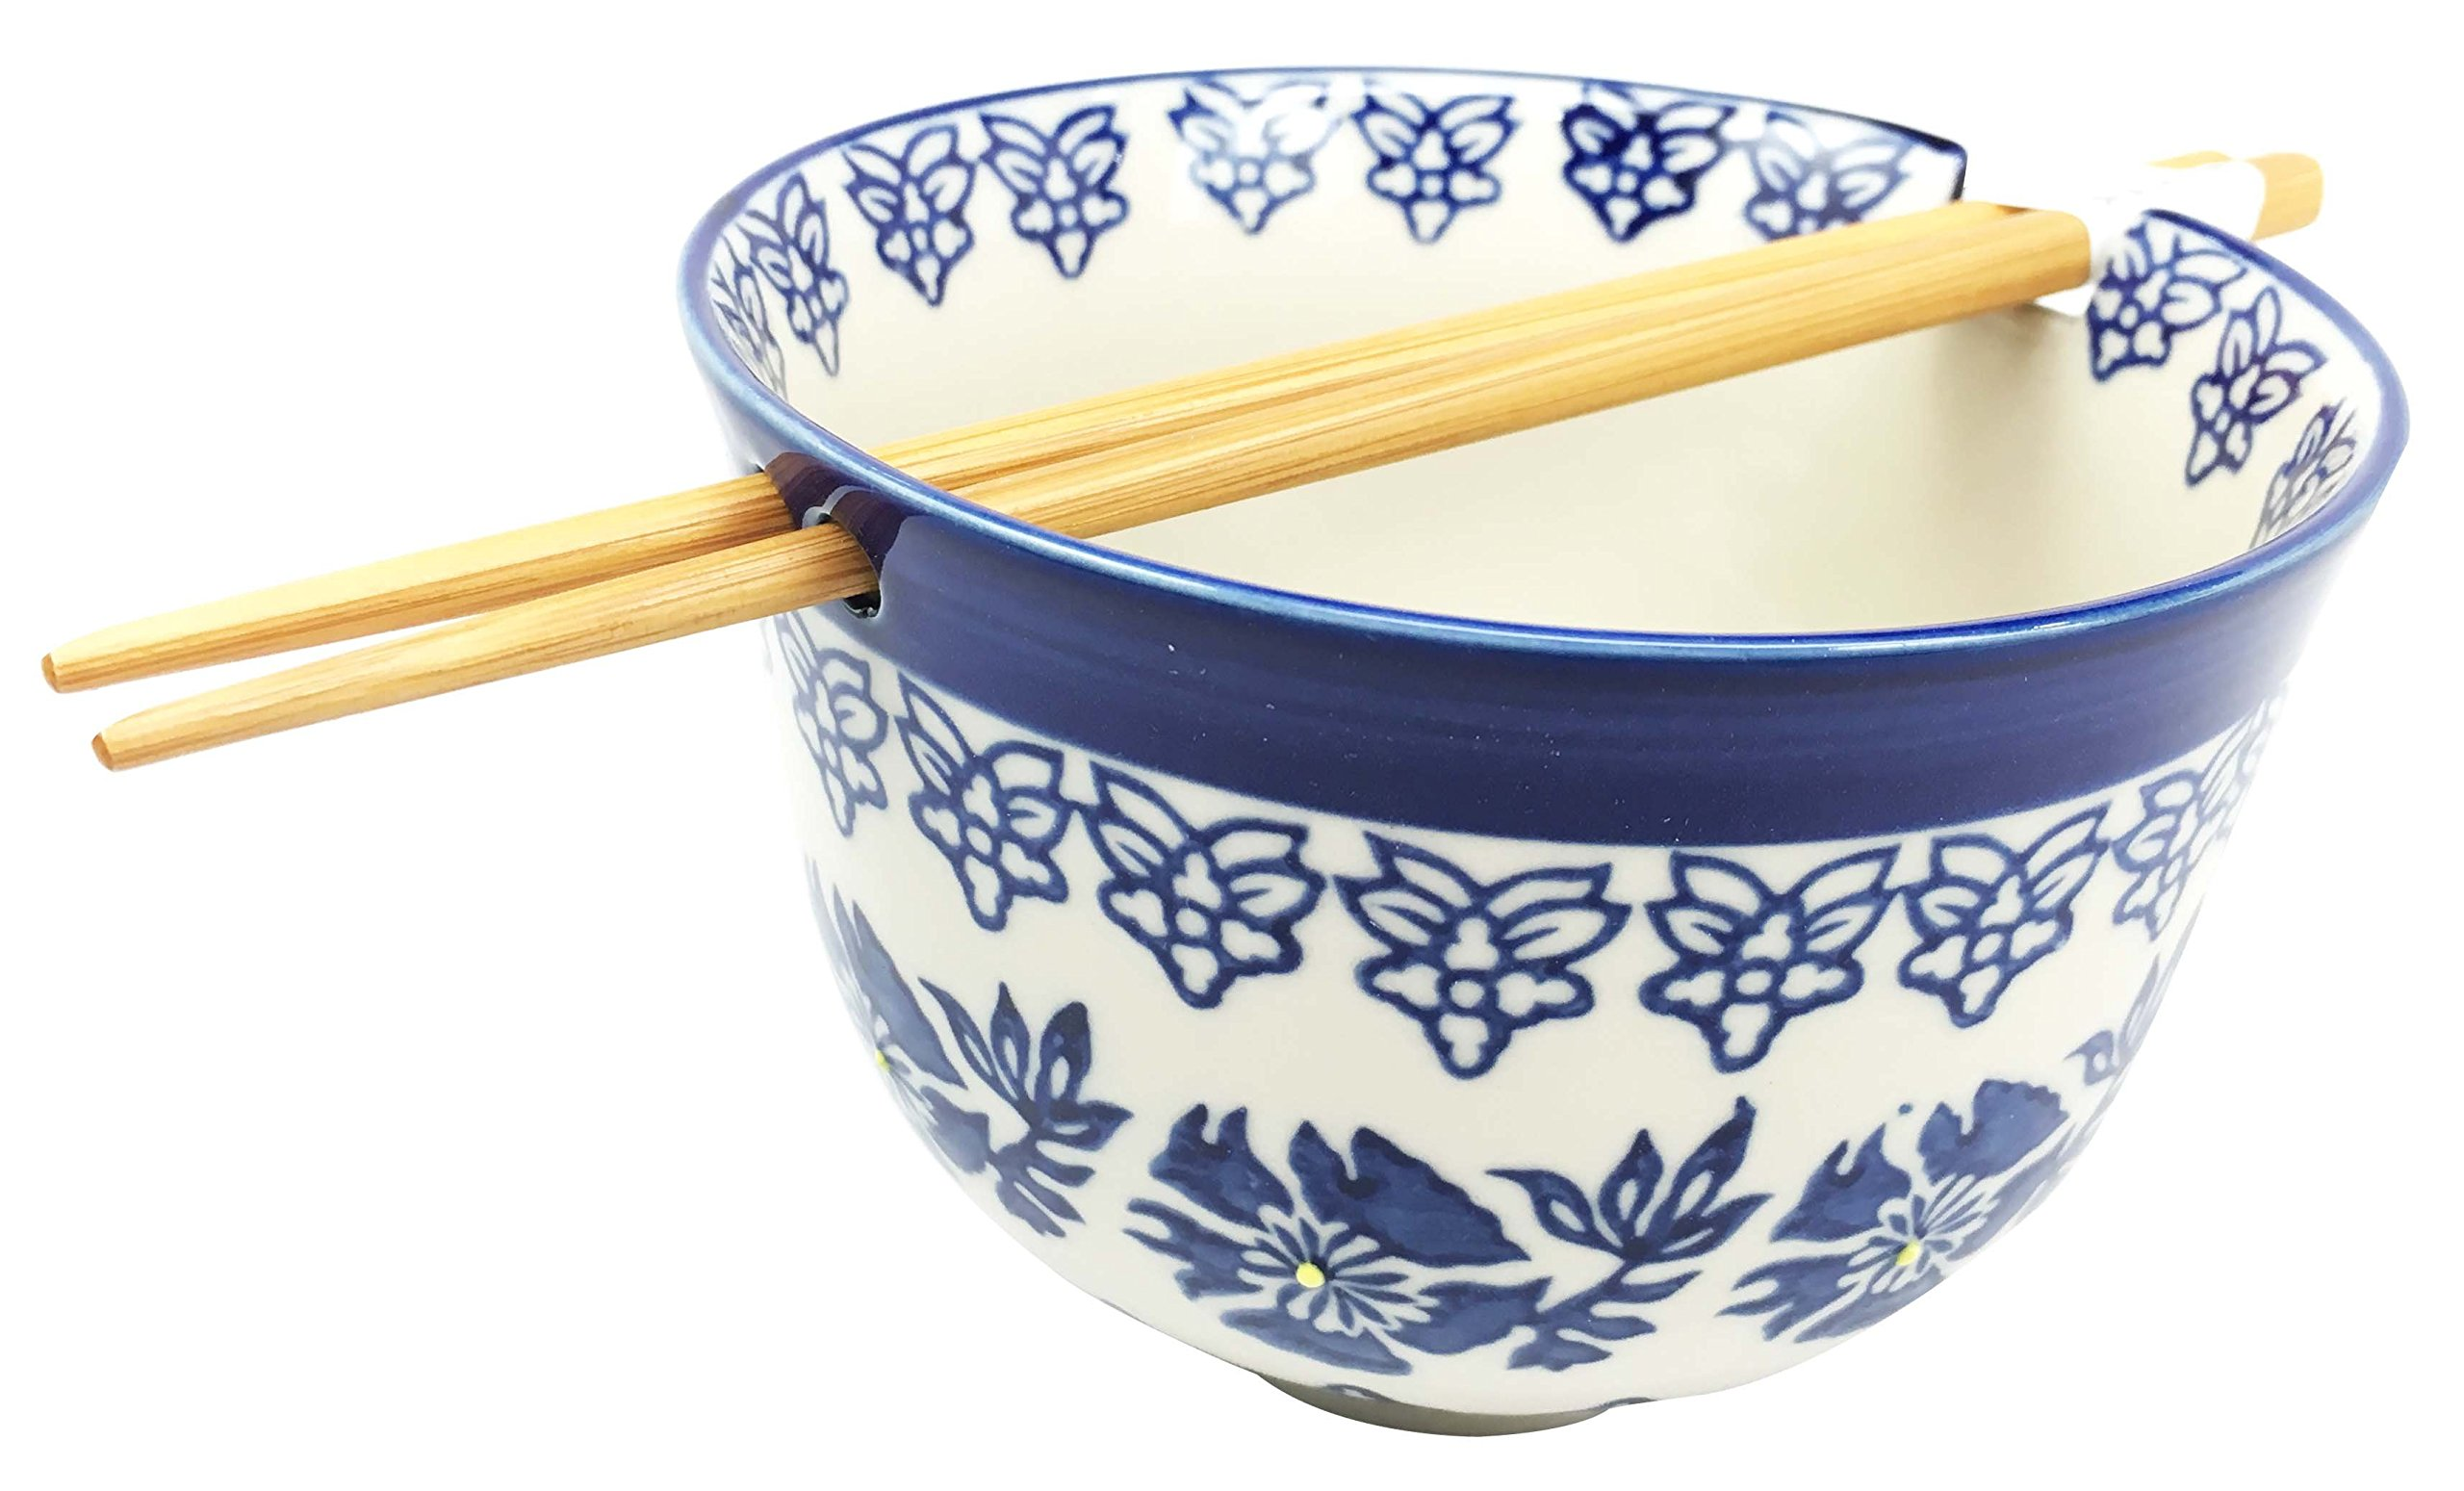 Japanese Design Blue Unison Symmetry Pattern Ceramic Ramen Udong Noodle Soup Bowl and Chopsticks Set Great Gift For College Students Housewarming Ramen Lovers Asian Living Home Decor